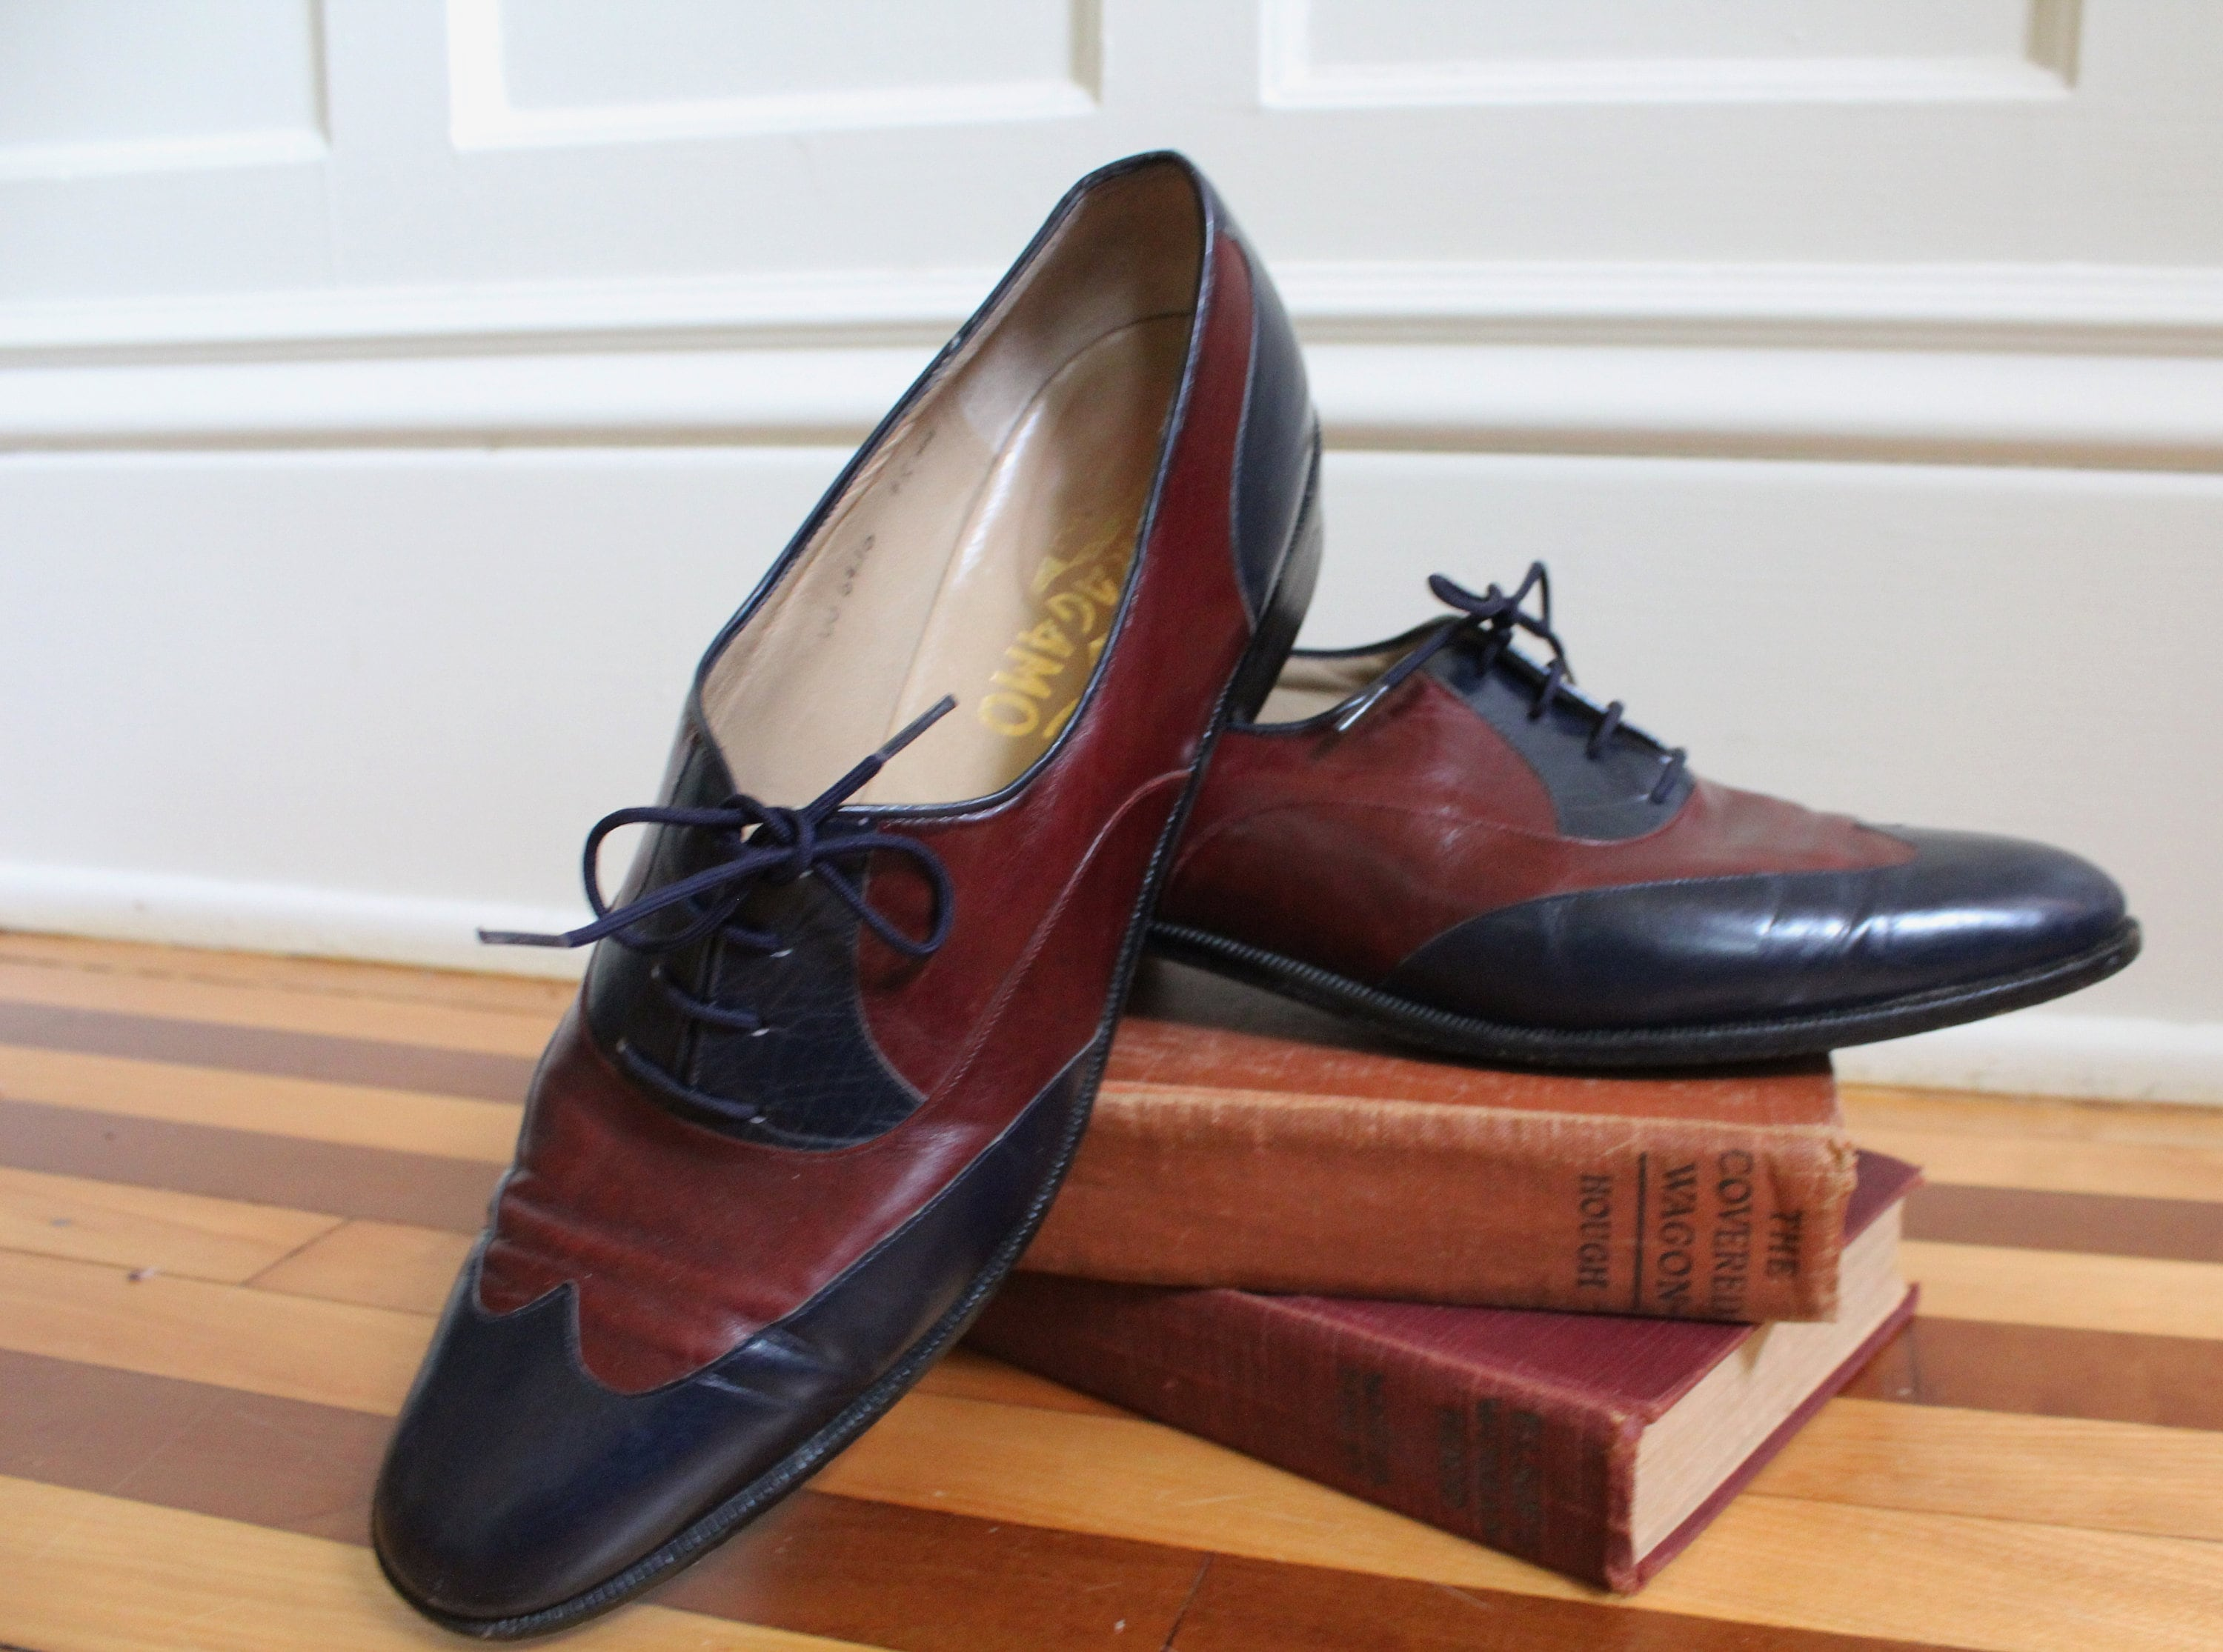 Vintage Ferragamo Colorblock Navy & Oxblood Burgundy Leather Flat Tie Up Saddle Shoe Flat Leather Oxfords Women's Size 6.5 7 7.5 AA Narrow Made in Italy ac4f64